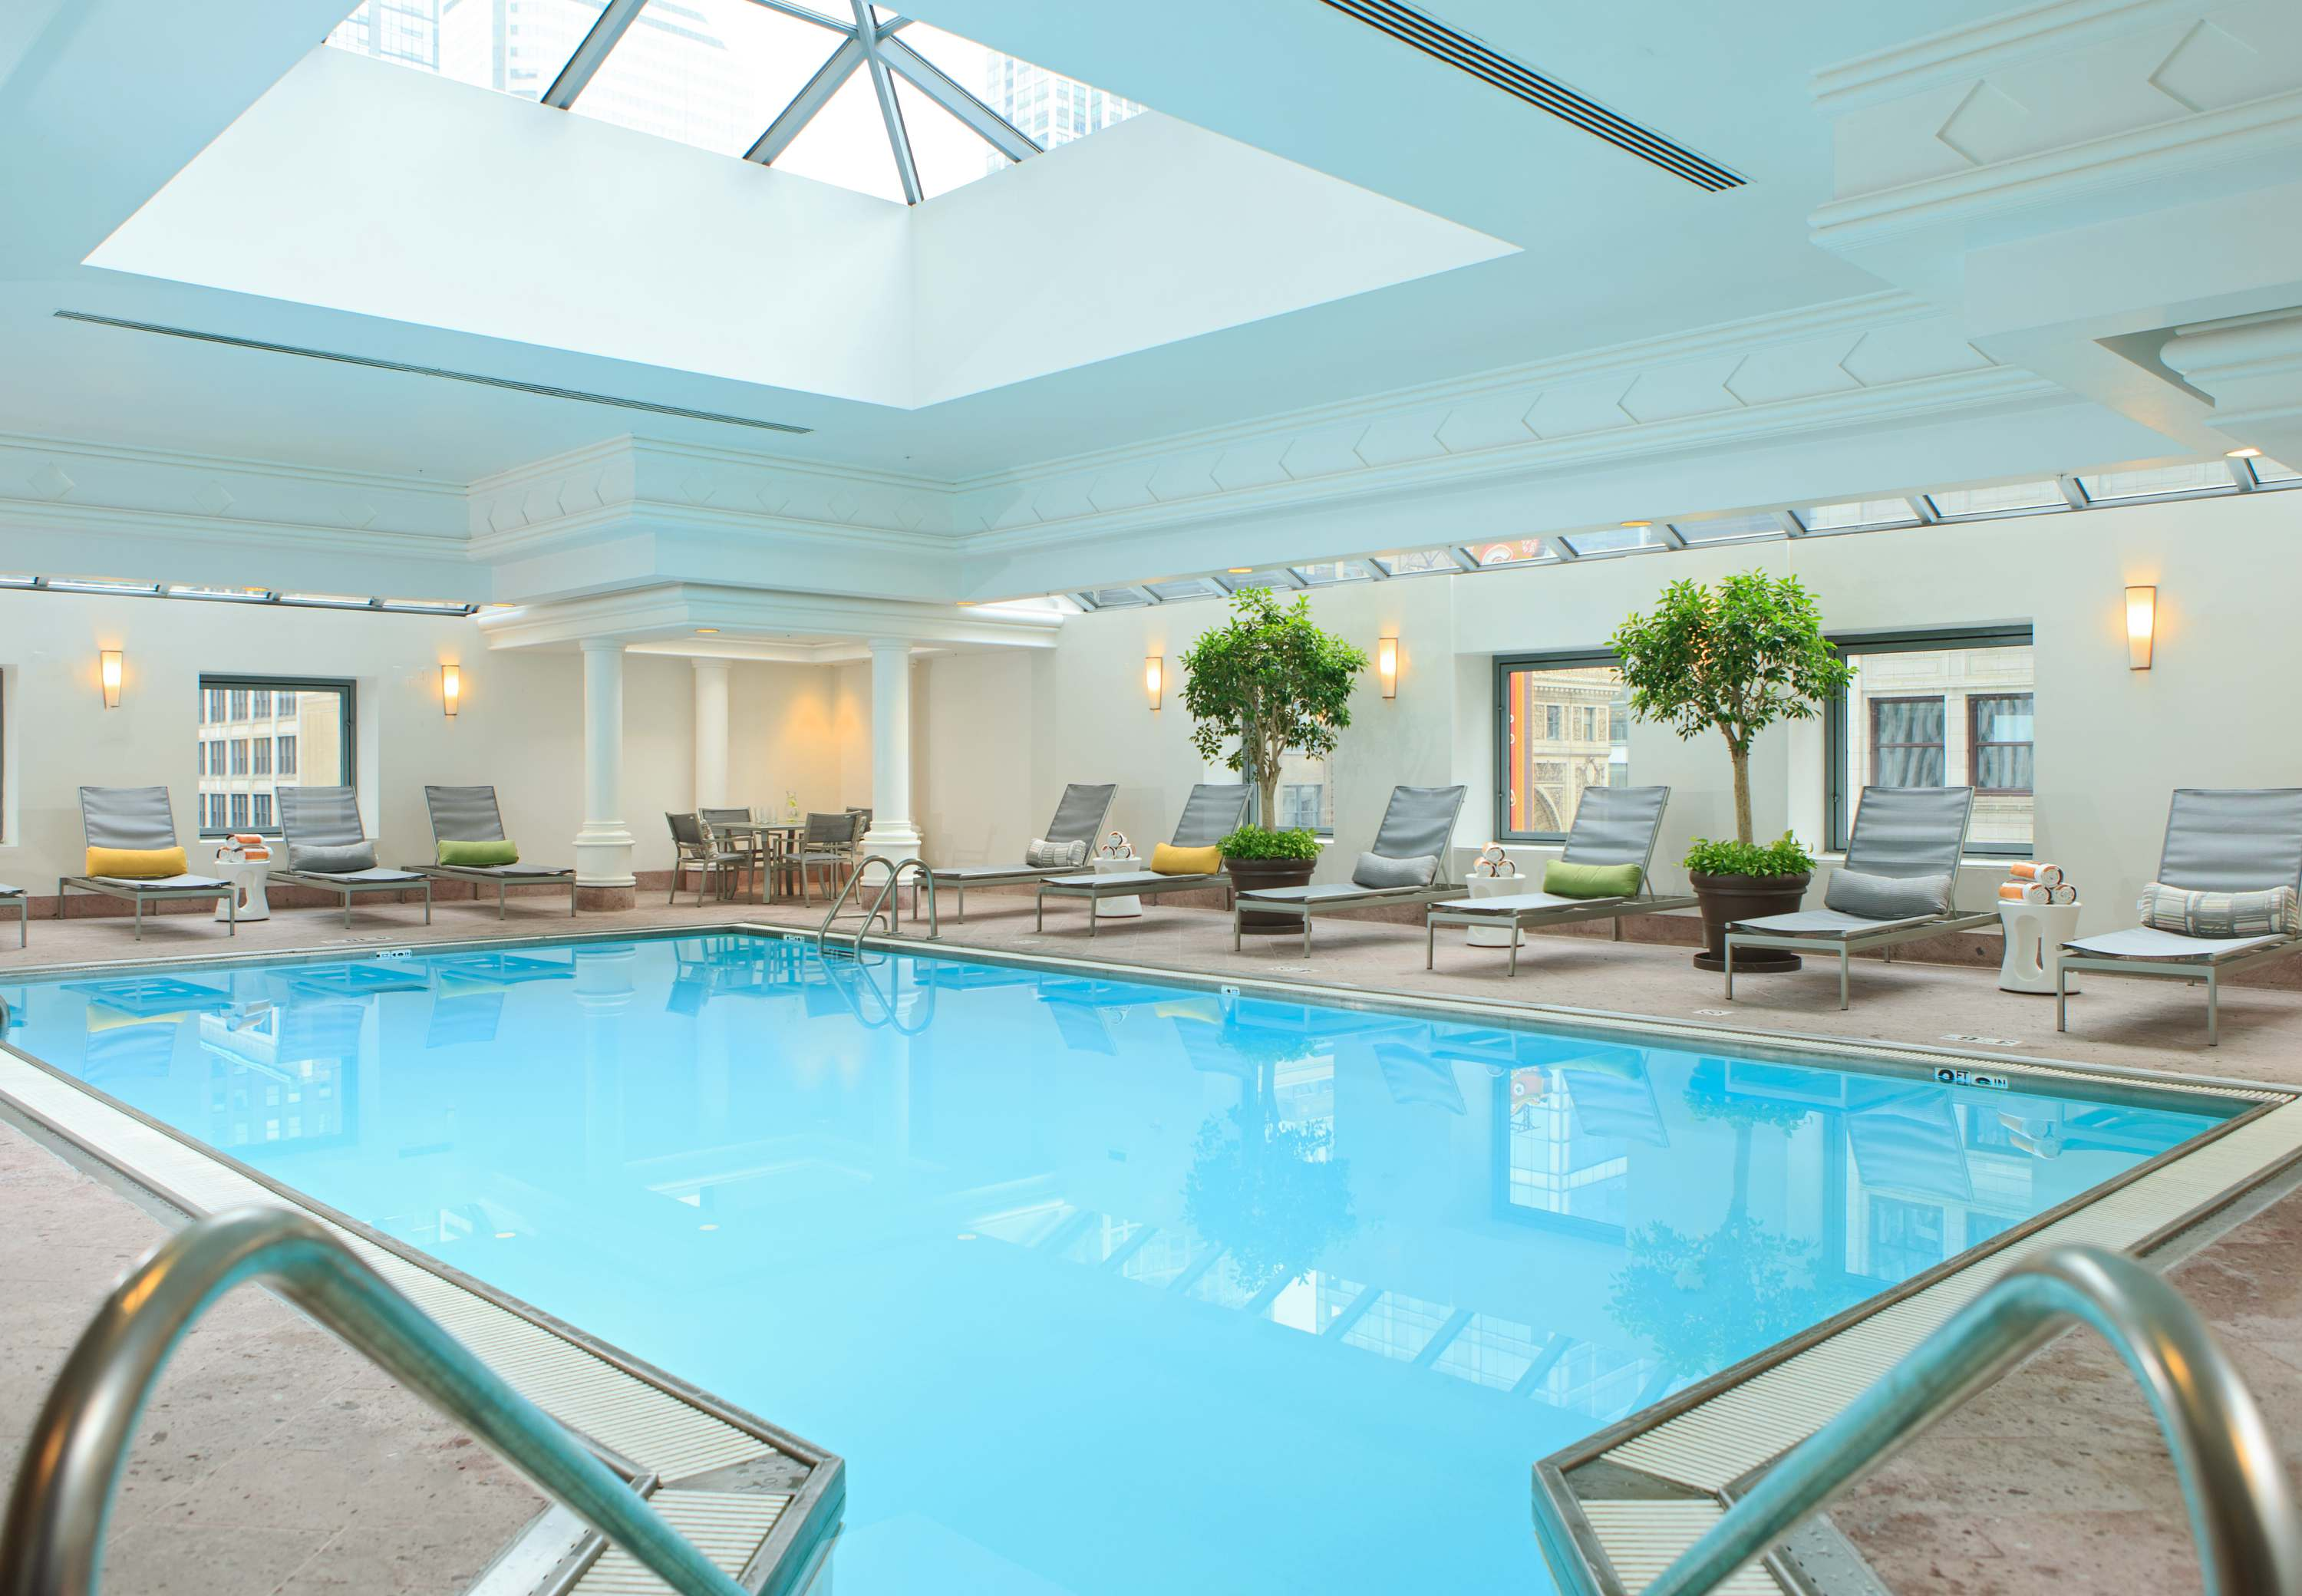 Renaissance chicago downtown hotel chicago illinois il - University of chicago swimming pool ...